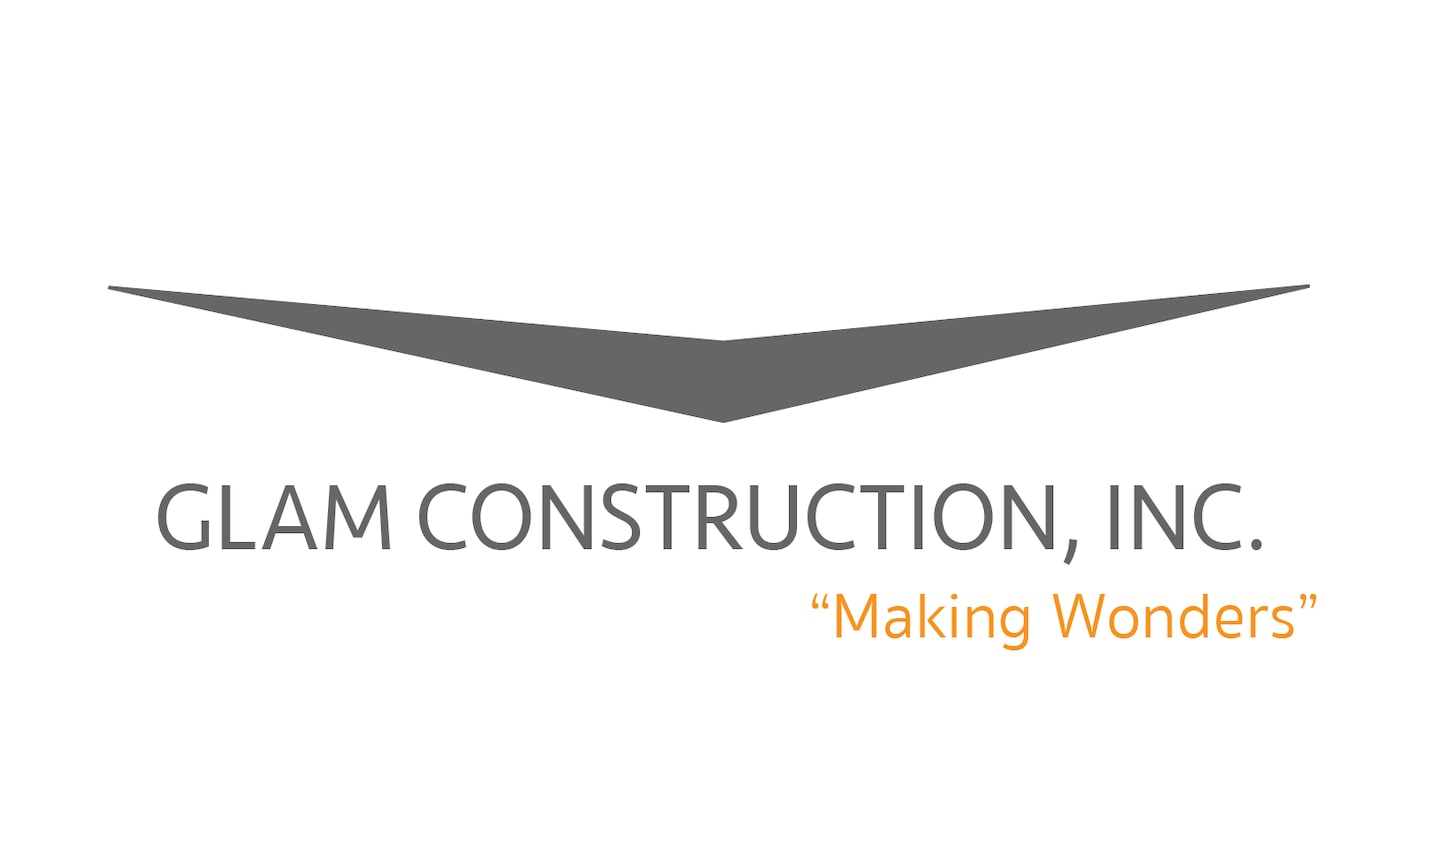 Glam Construction, Inc